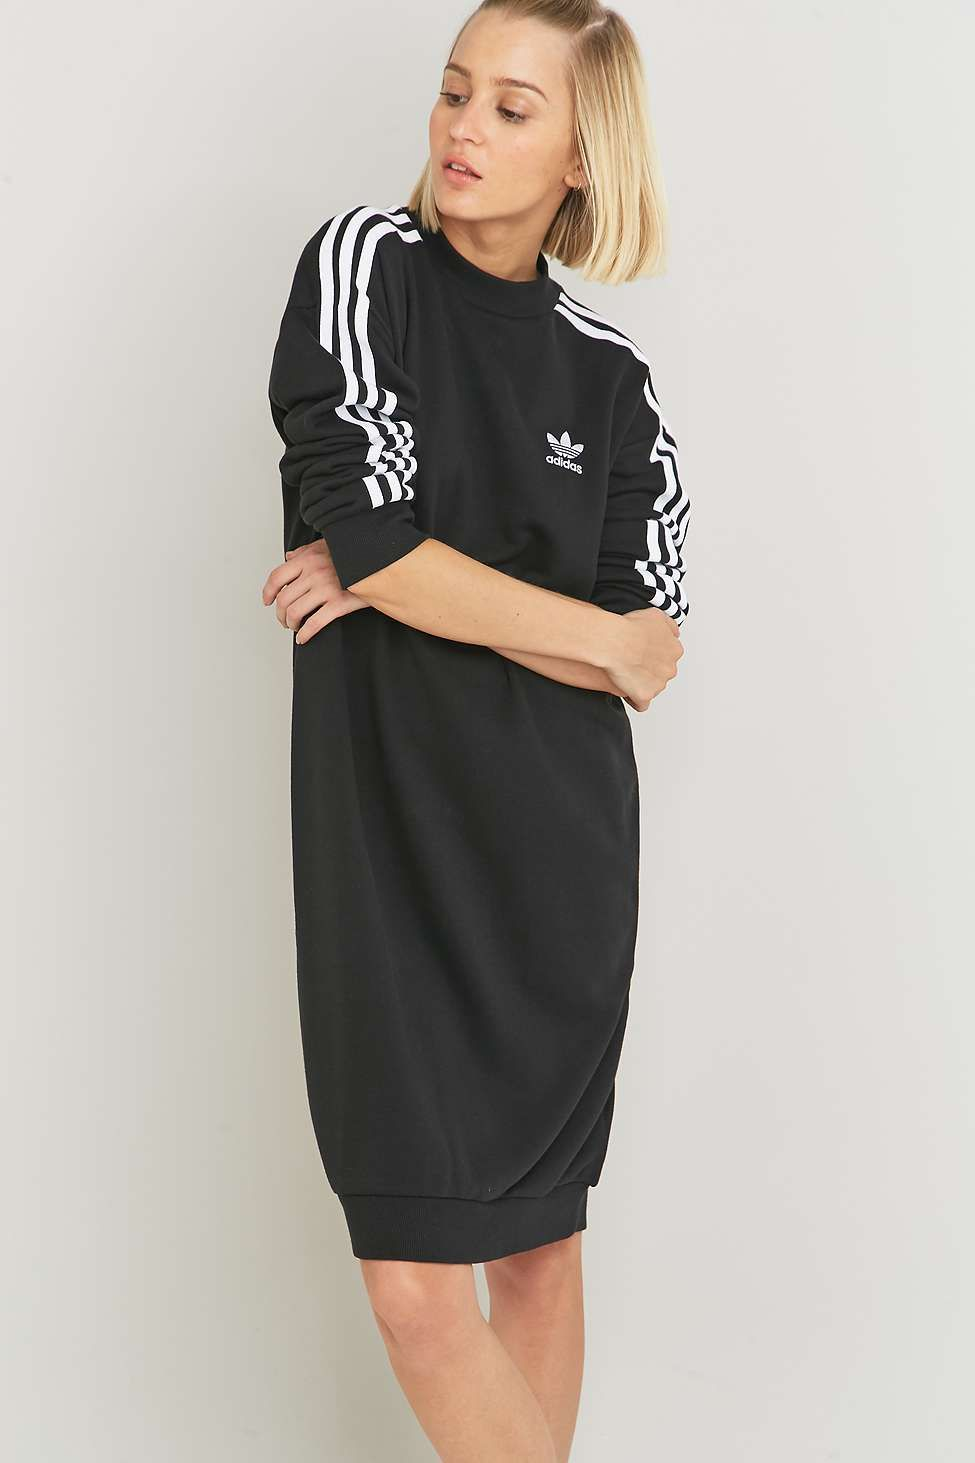 free shipping ecef6 10e3d adidas Originals 3-Stripe Black Midi Dress